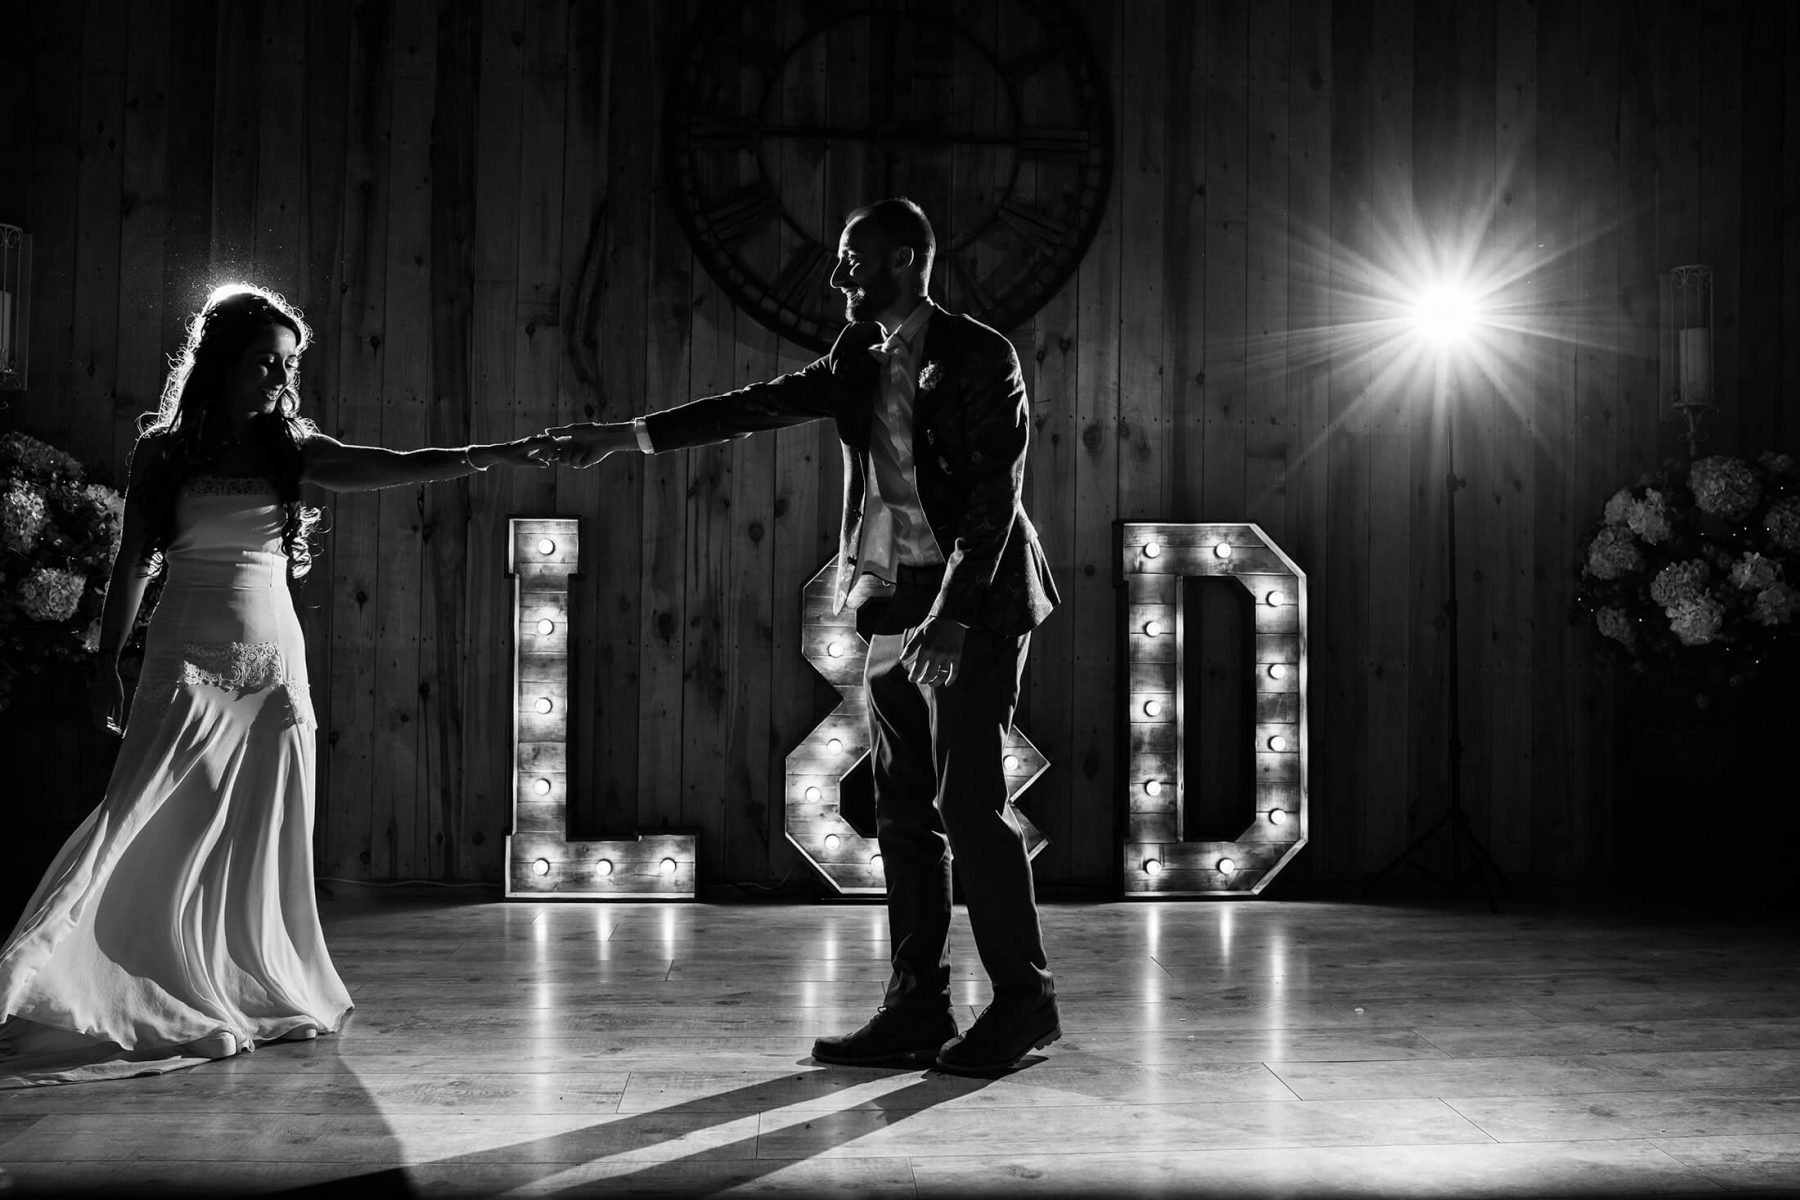 A black and white omage of the bride and groom during their first dance together.